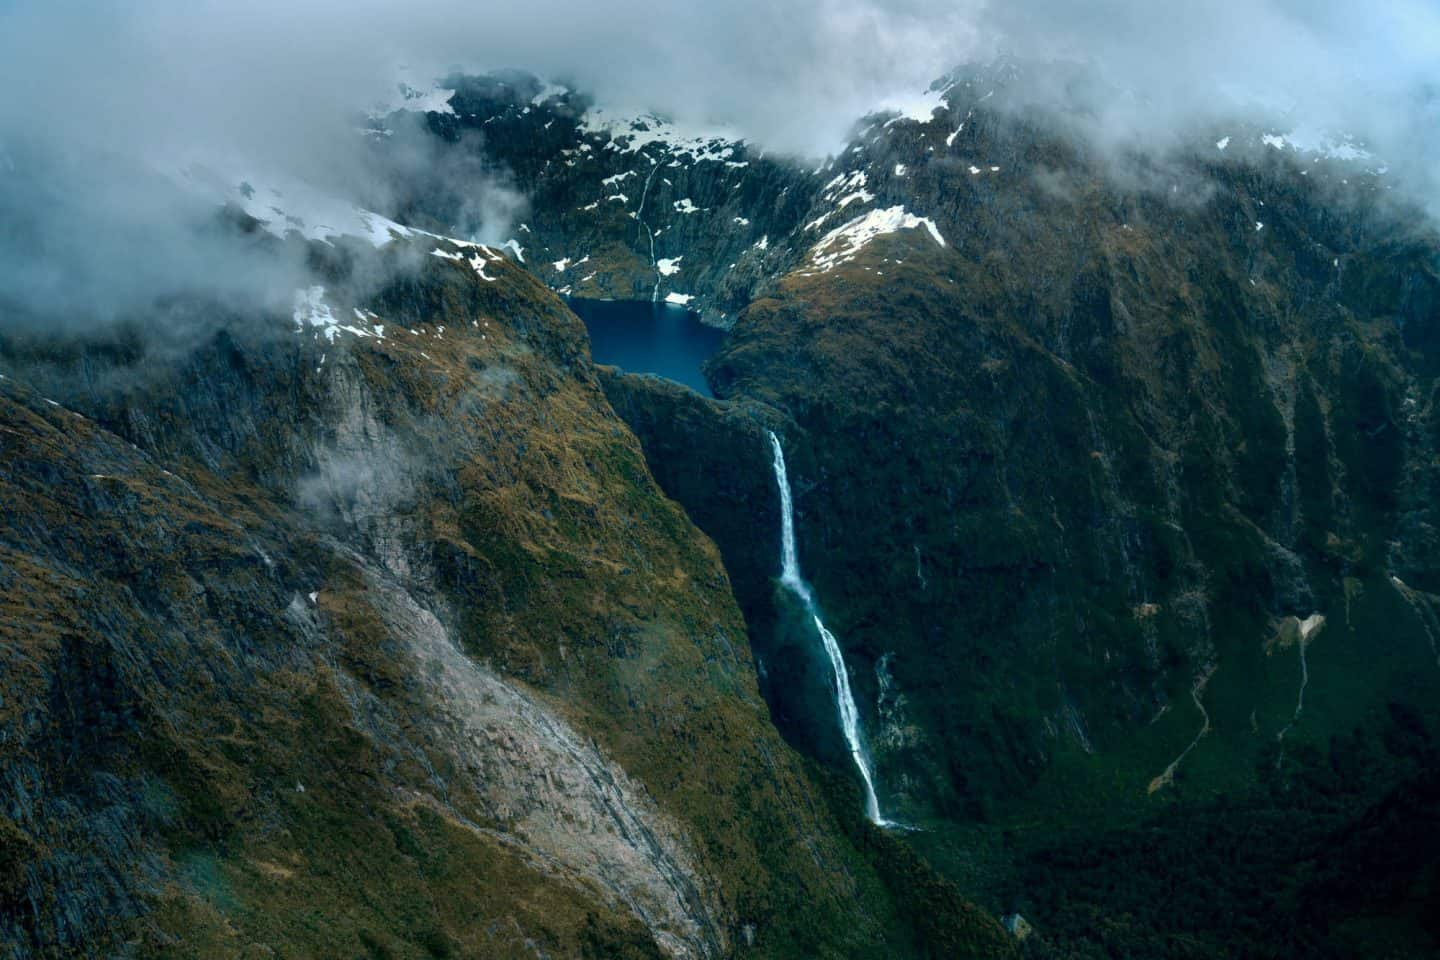 One of Milford Sound's permanent waterfalls, photographed from a plane on its way to Queenstown.